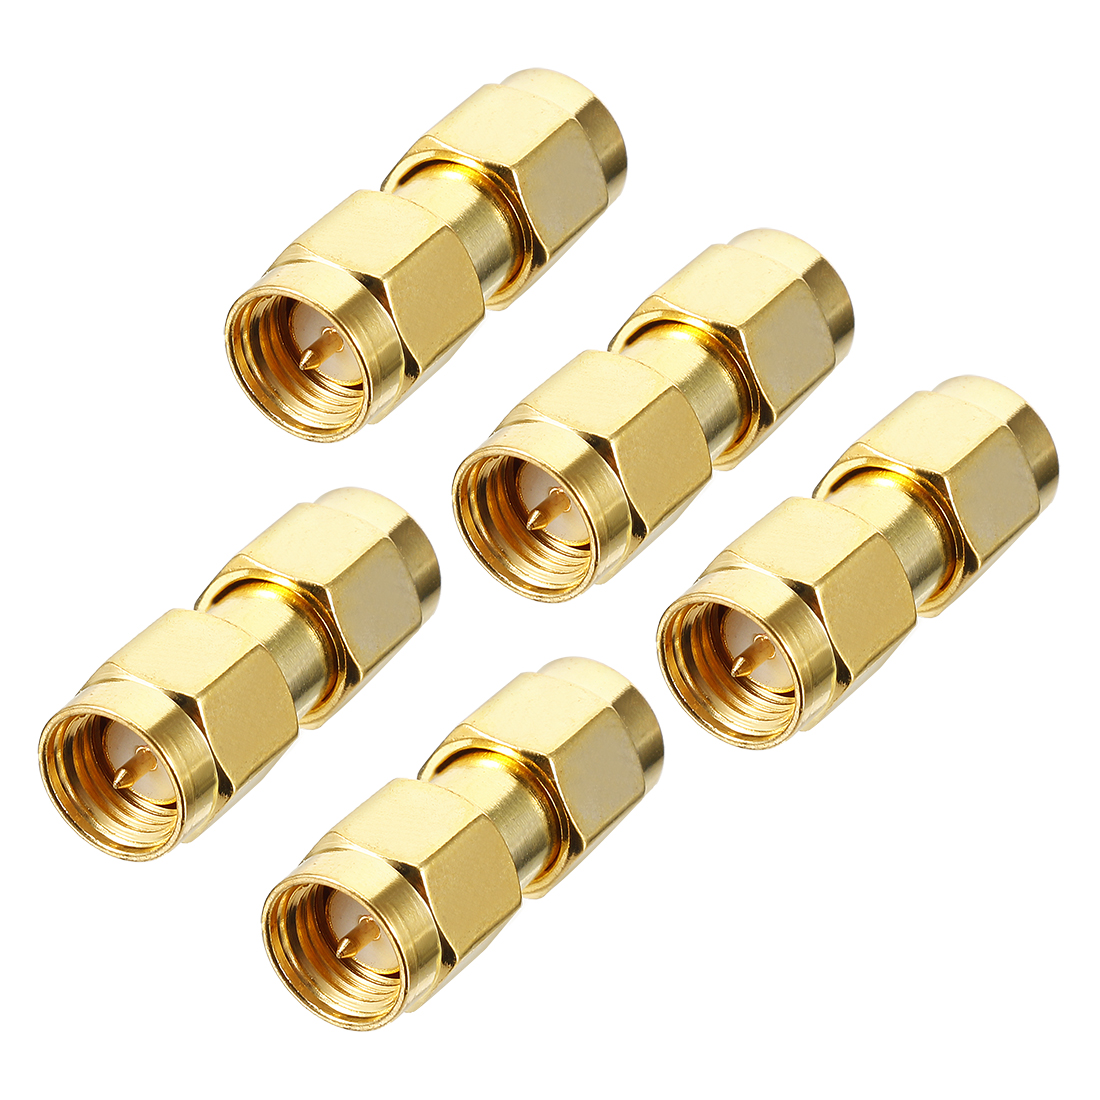 5pcs Gold Tone SMA Male to SMA Male Jack RF Coaxial Adapter Connector